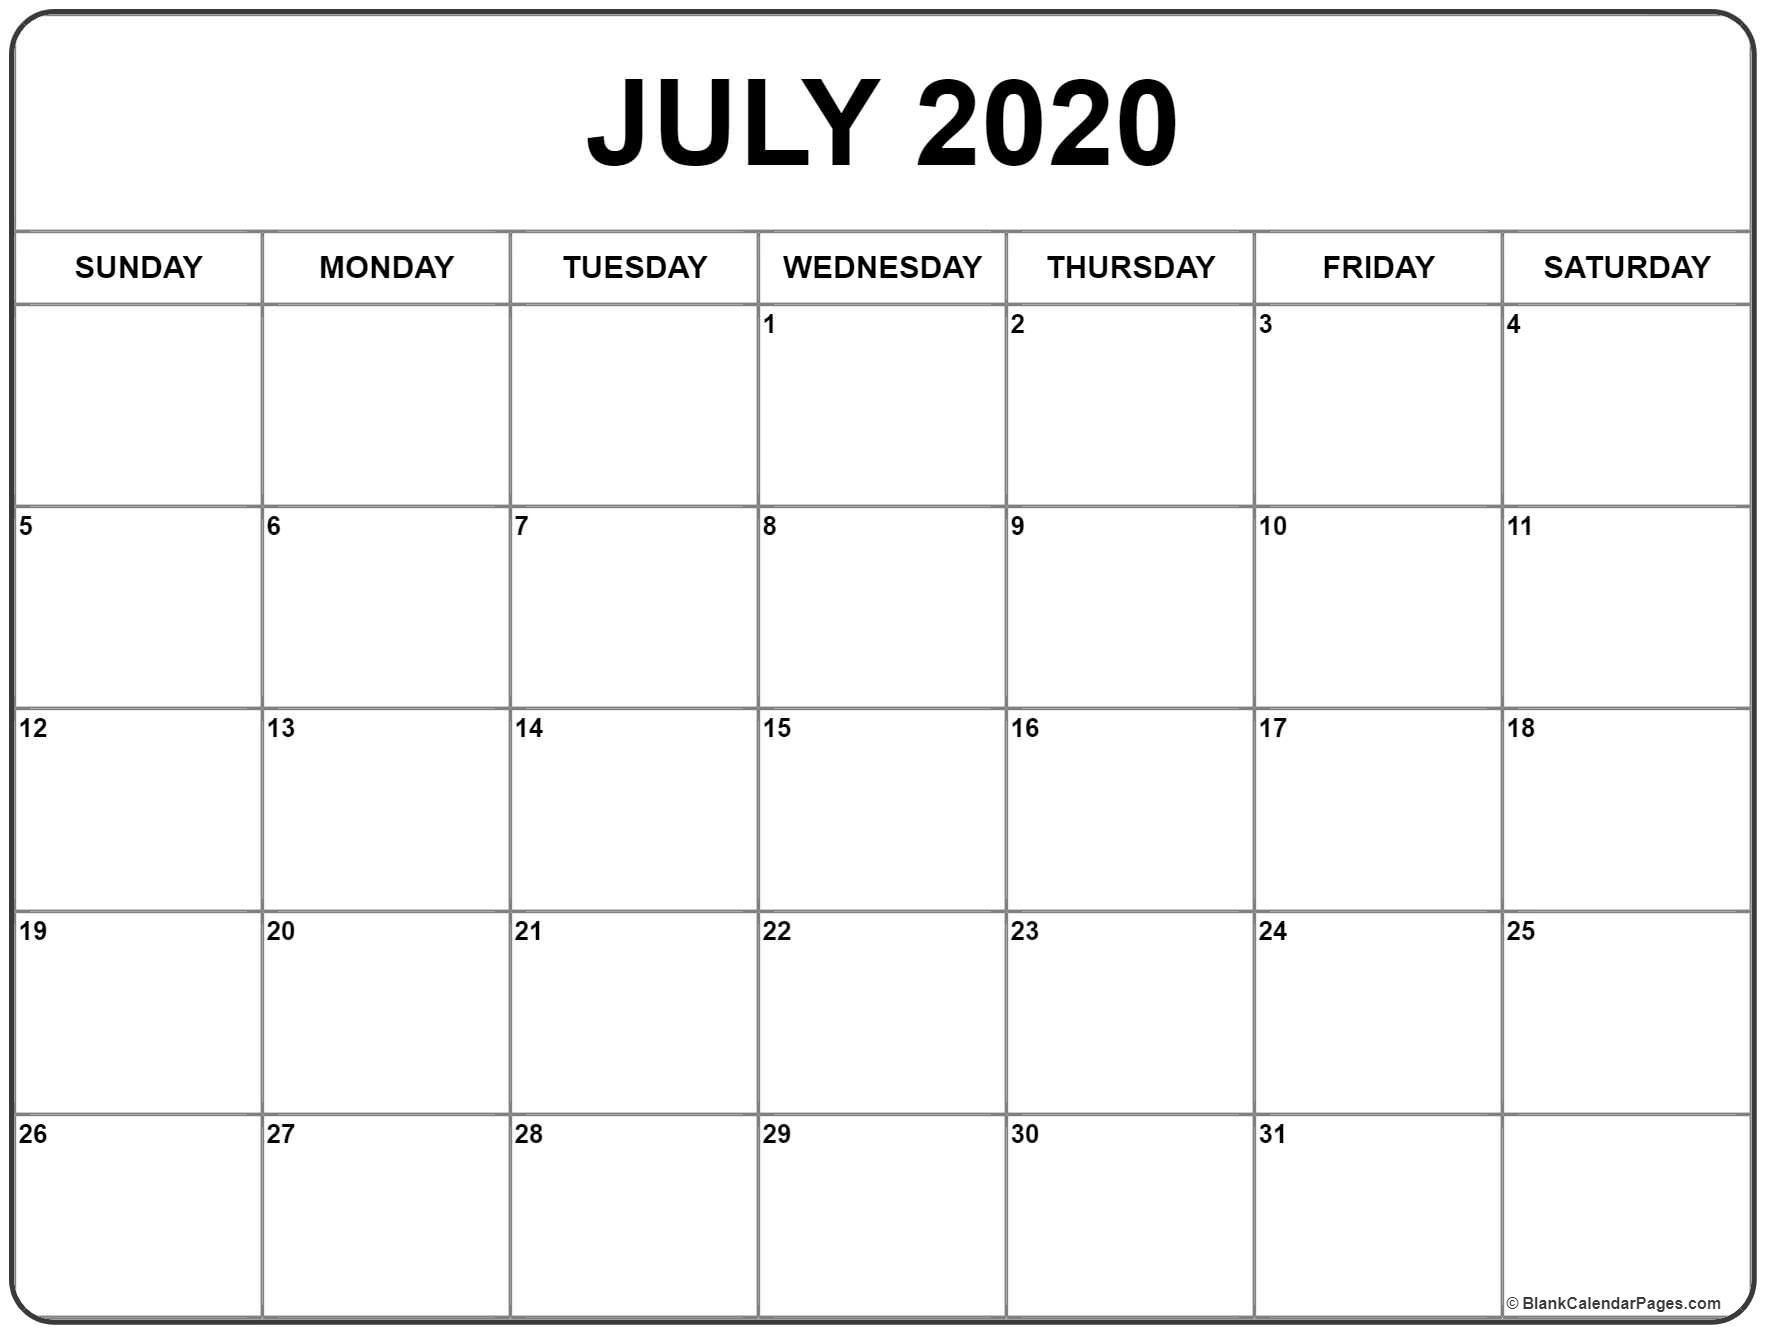 July 2020 Calendar | Printable Blank Calendar, January-Monthly Calendar July August 2020